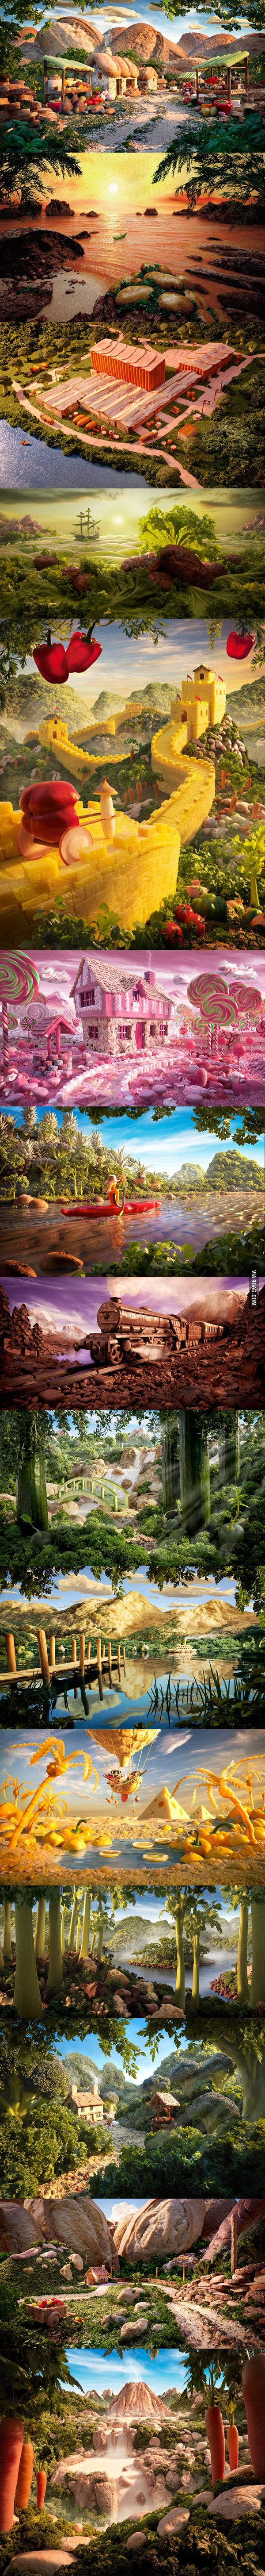 The Best Carl Warner Ideas On Pinterest Human Body - 15 fantasy landscapes entirely made from food